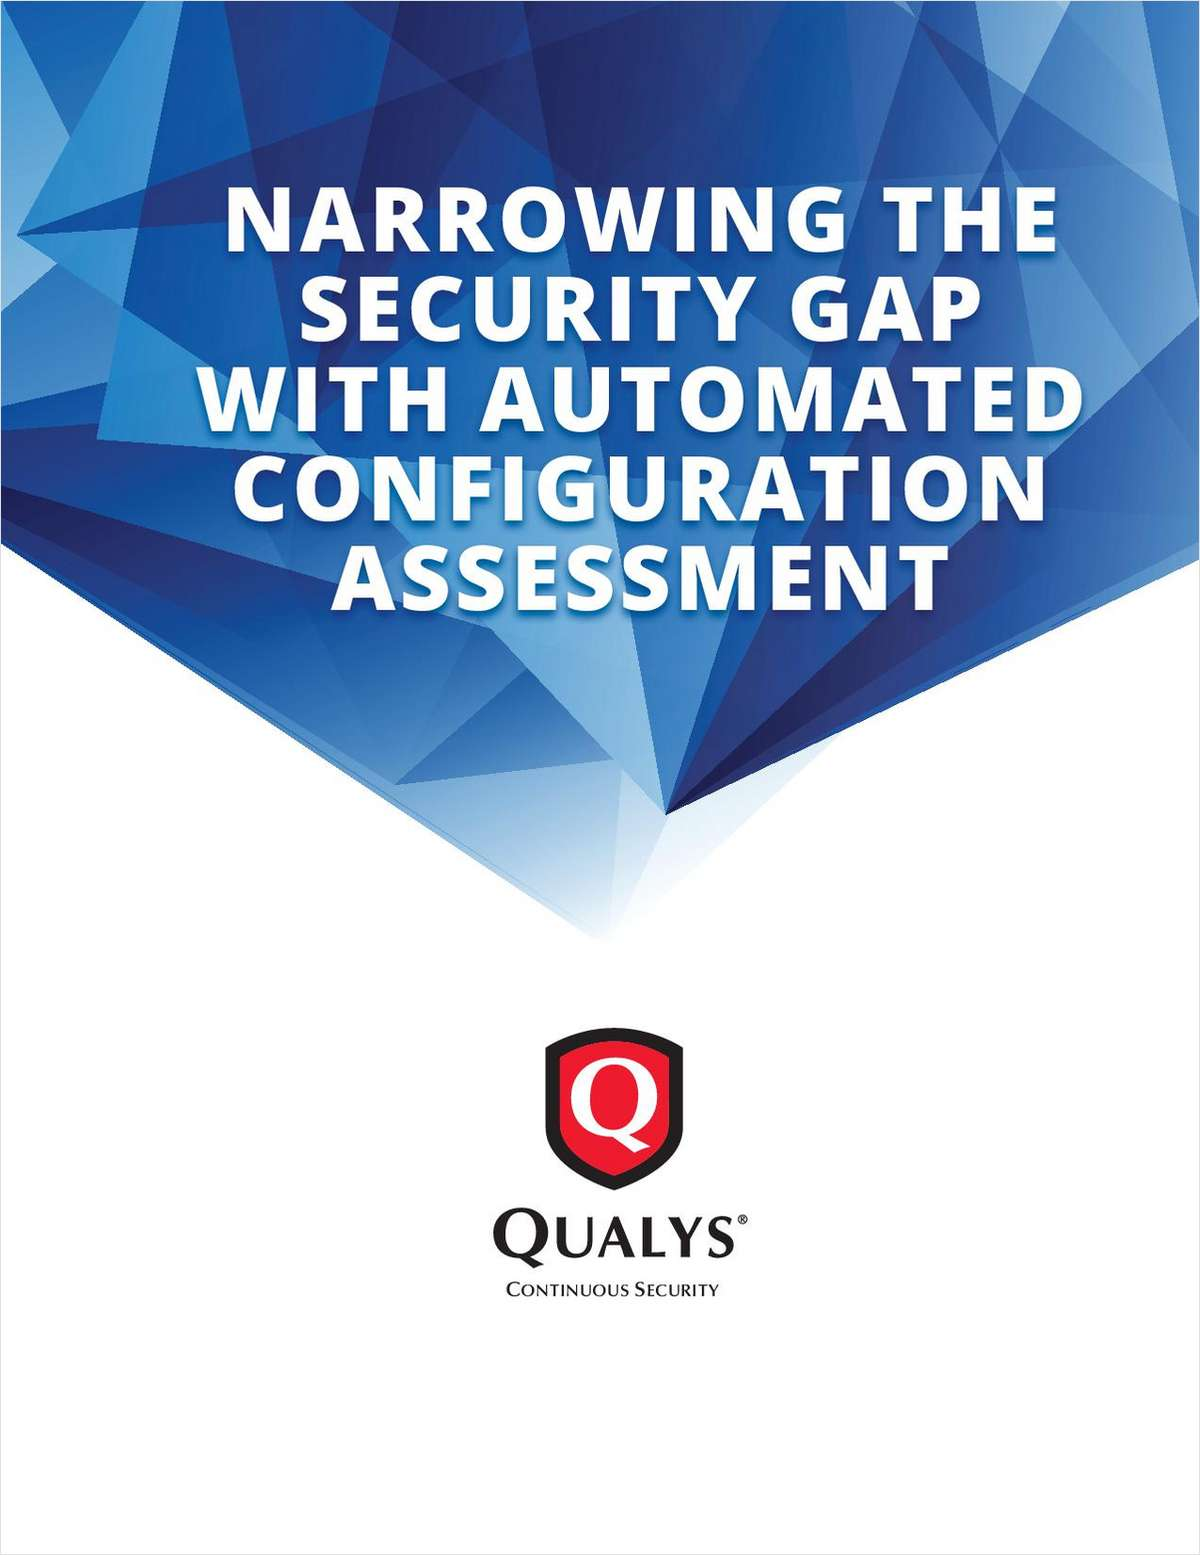 Narrowing the Security Gap with Automated Configuration Assessment